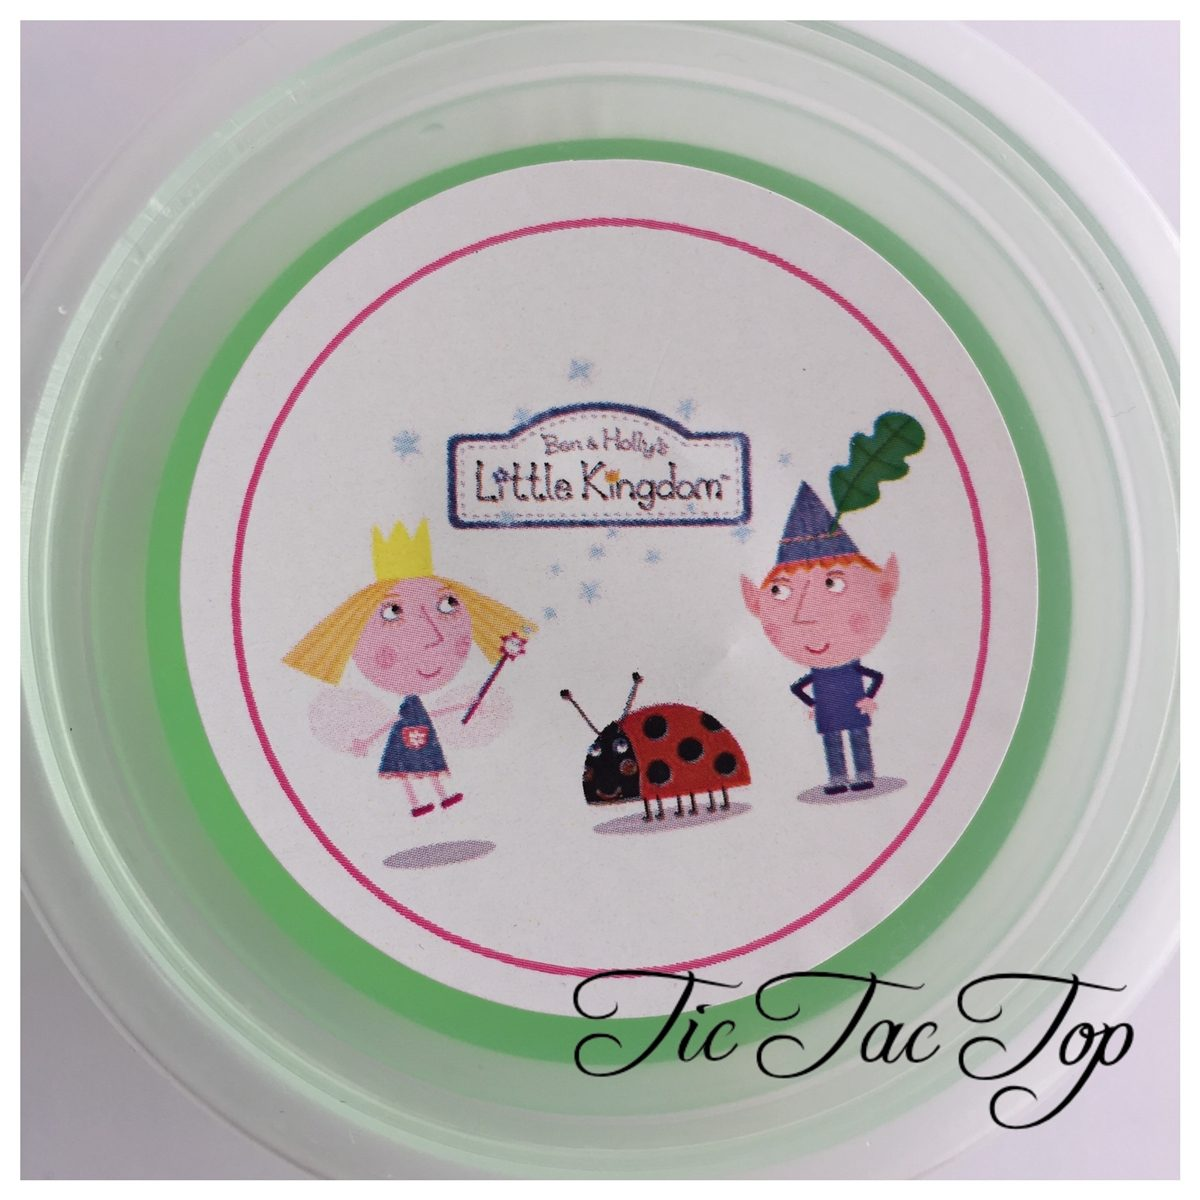 Ben & Holly Little Kingdom Jelly Cups - 12/set